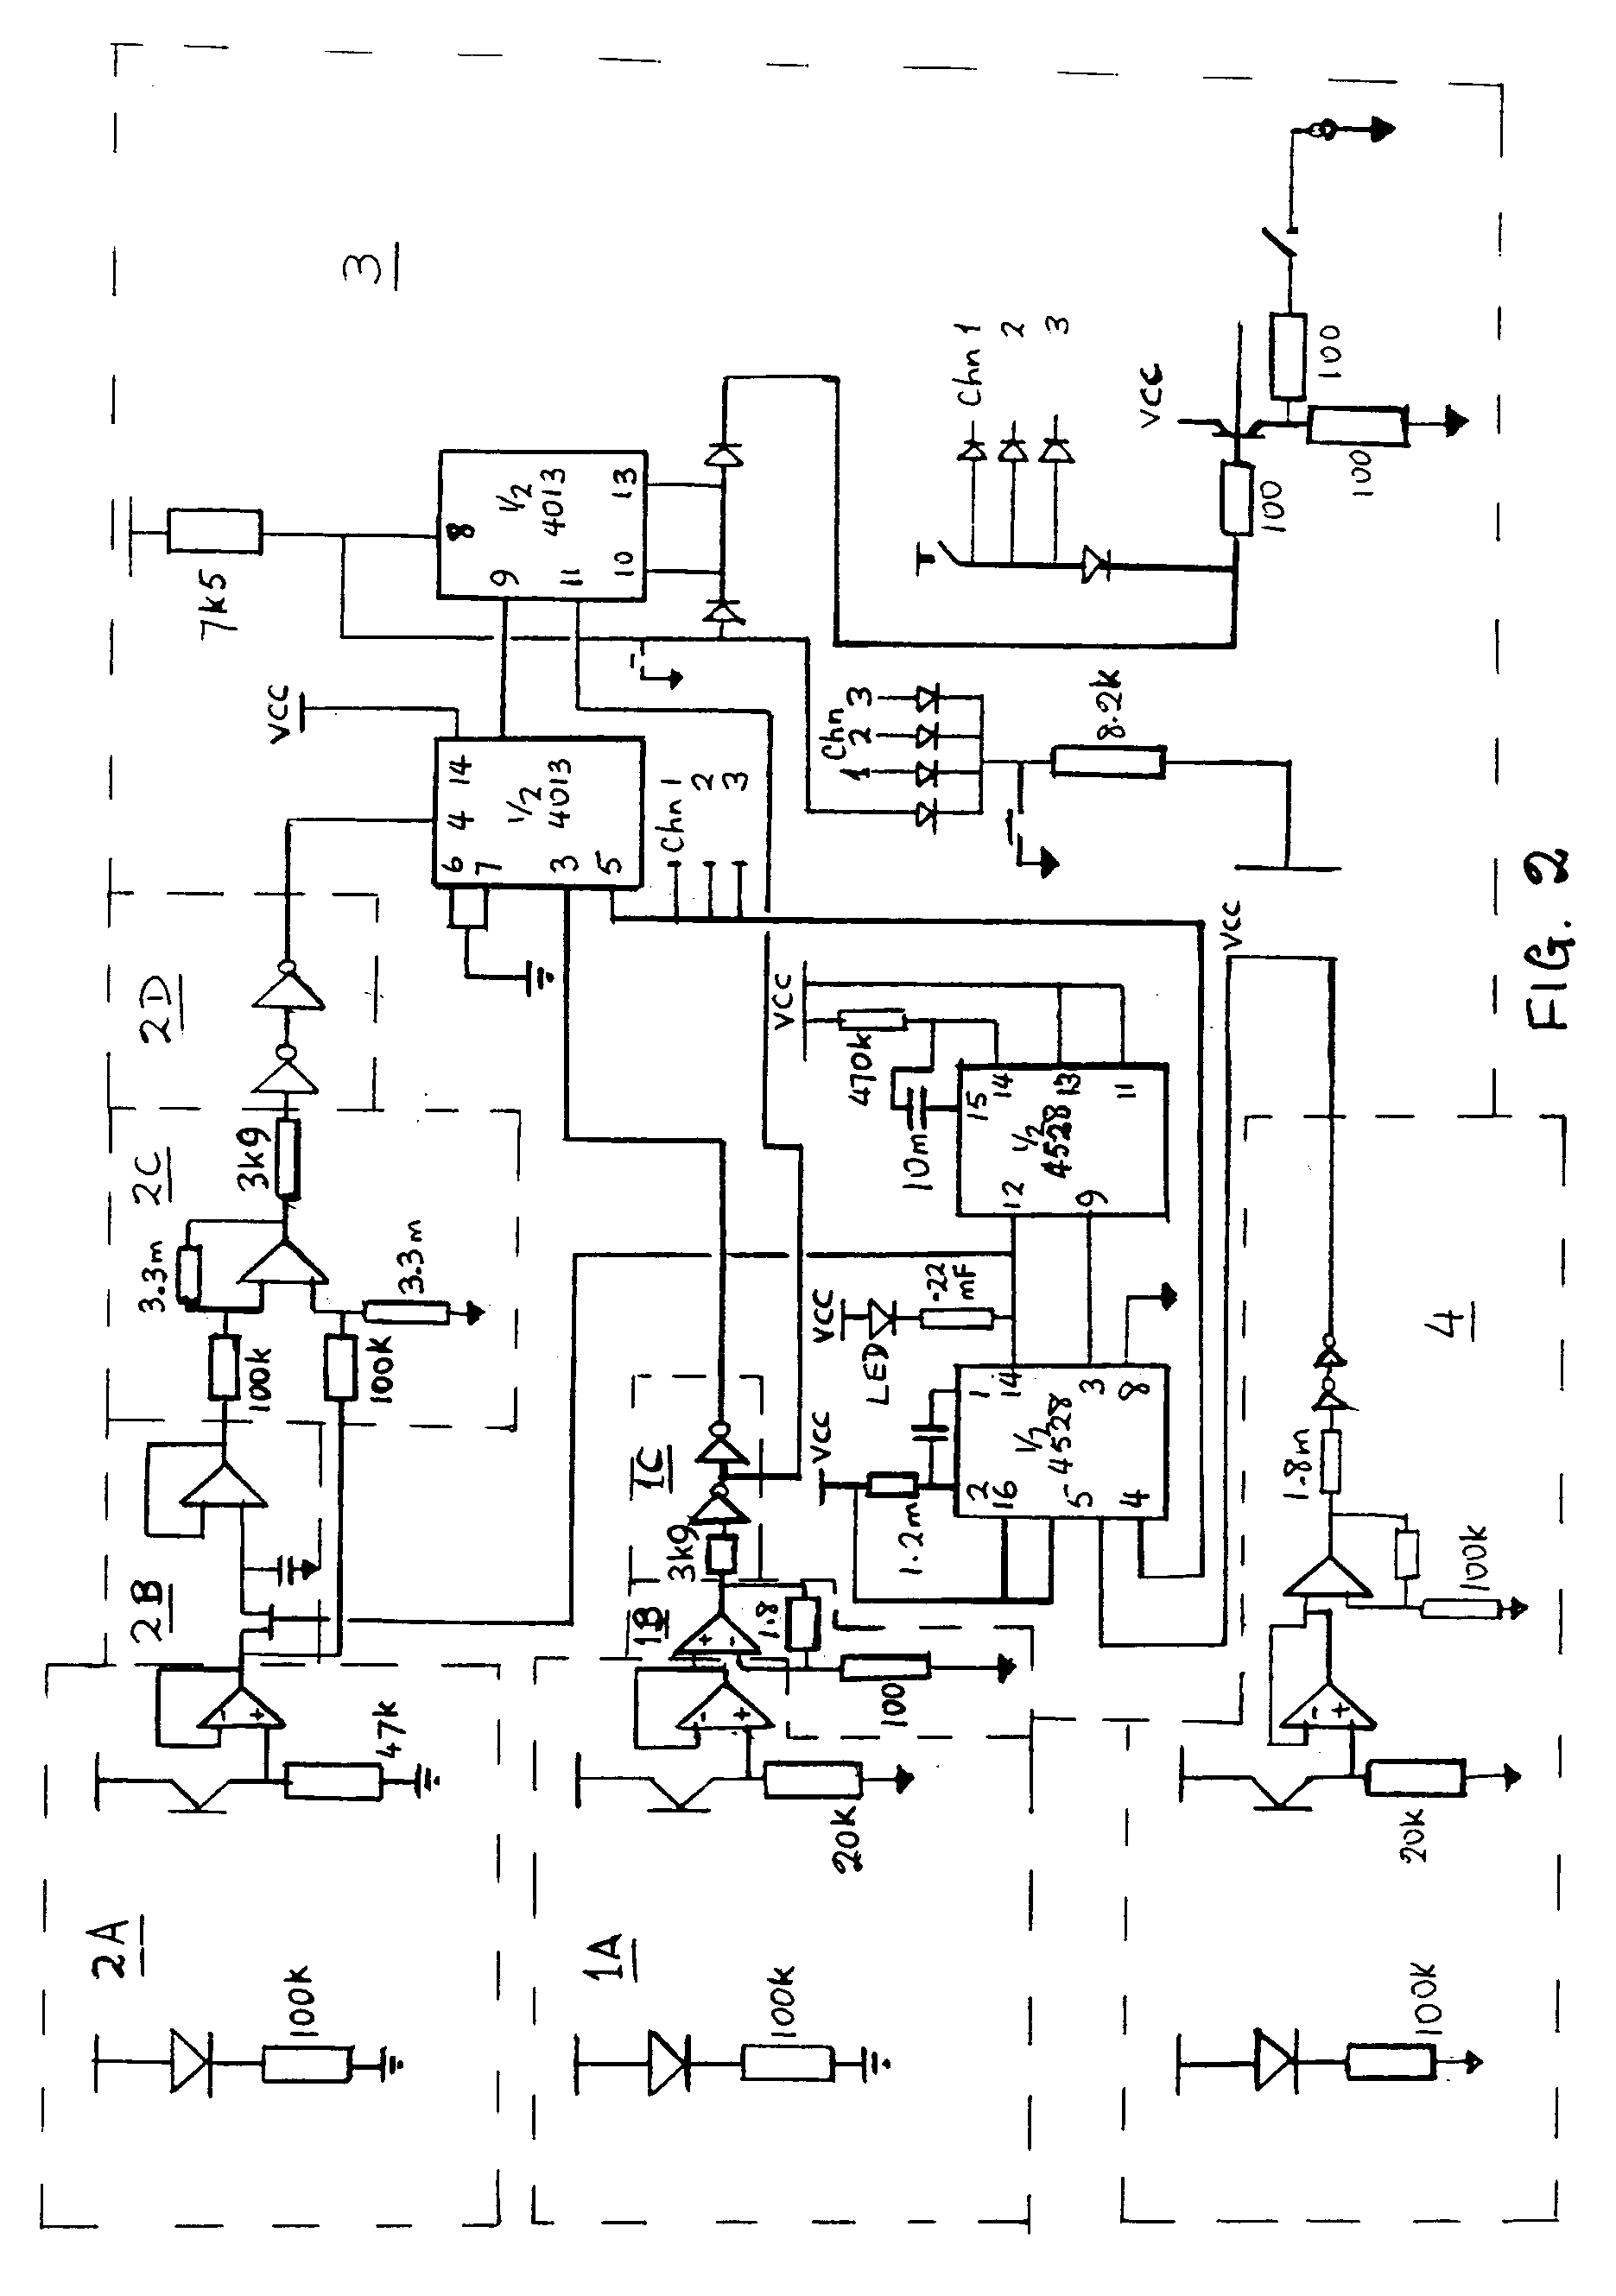 Dusk To Dawn Sensor Wiring Diagram likewise L  Post Light Sensor Wiring Diagram besides 5965 PHOTOELECTRIC AC POWER SWITCH moreover Photoelectric Sensor Wiring Diagram also Wiring diagram for photocell. on photoelectric switch wiring diagram